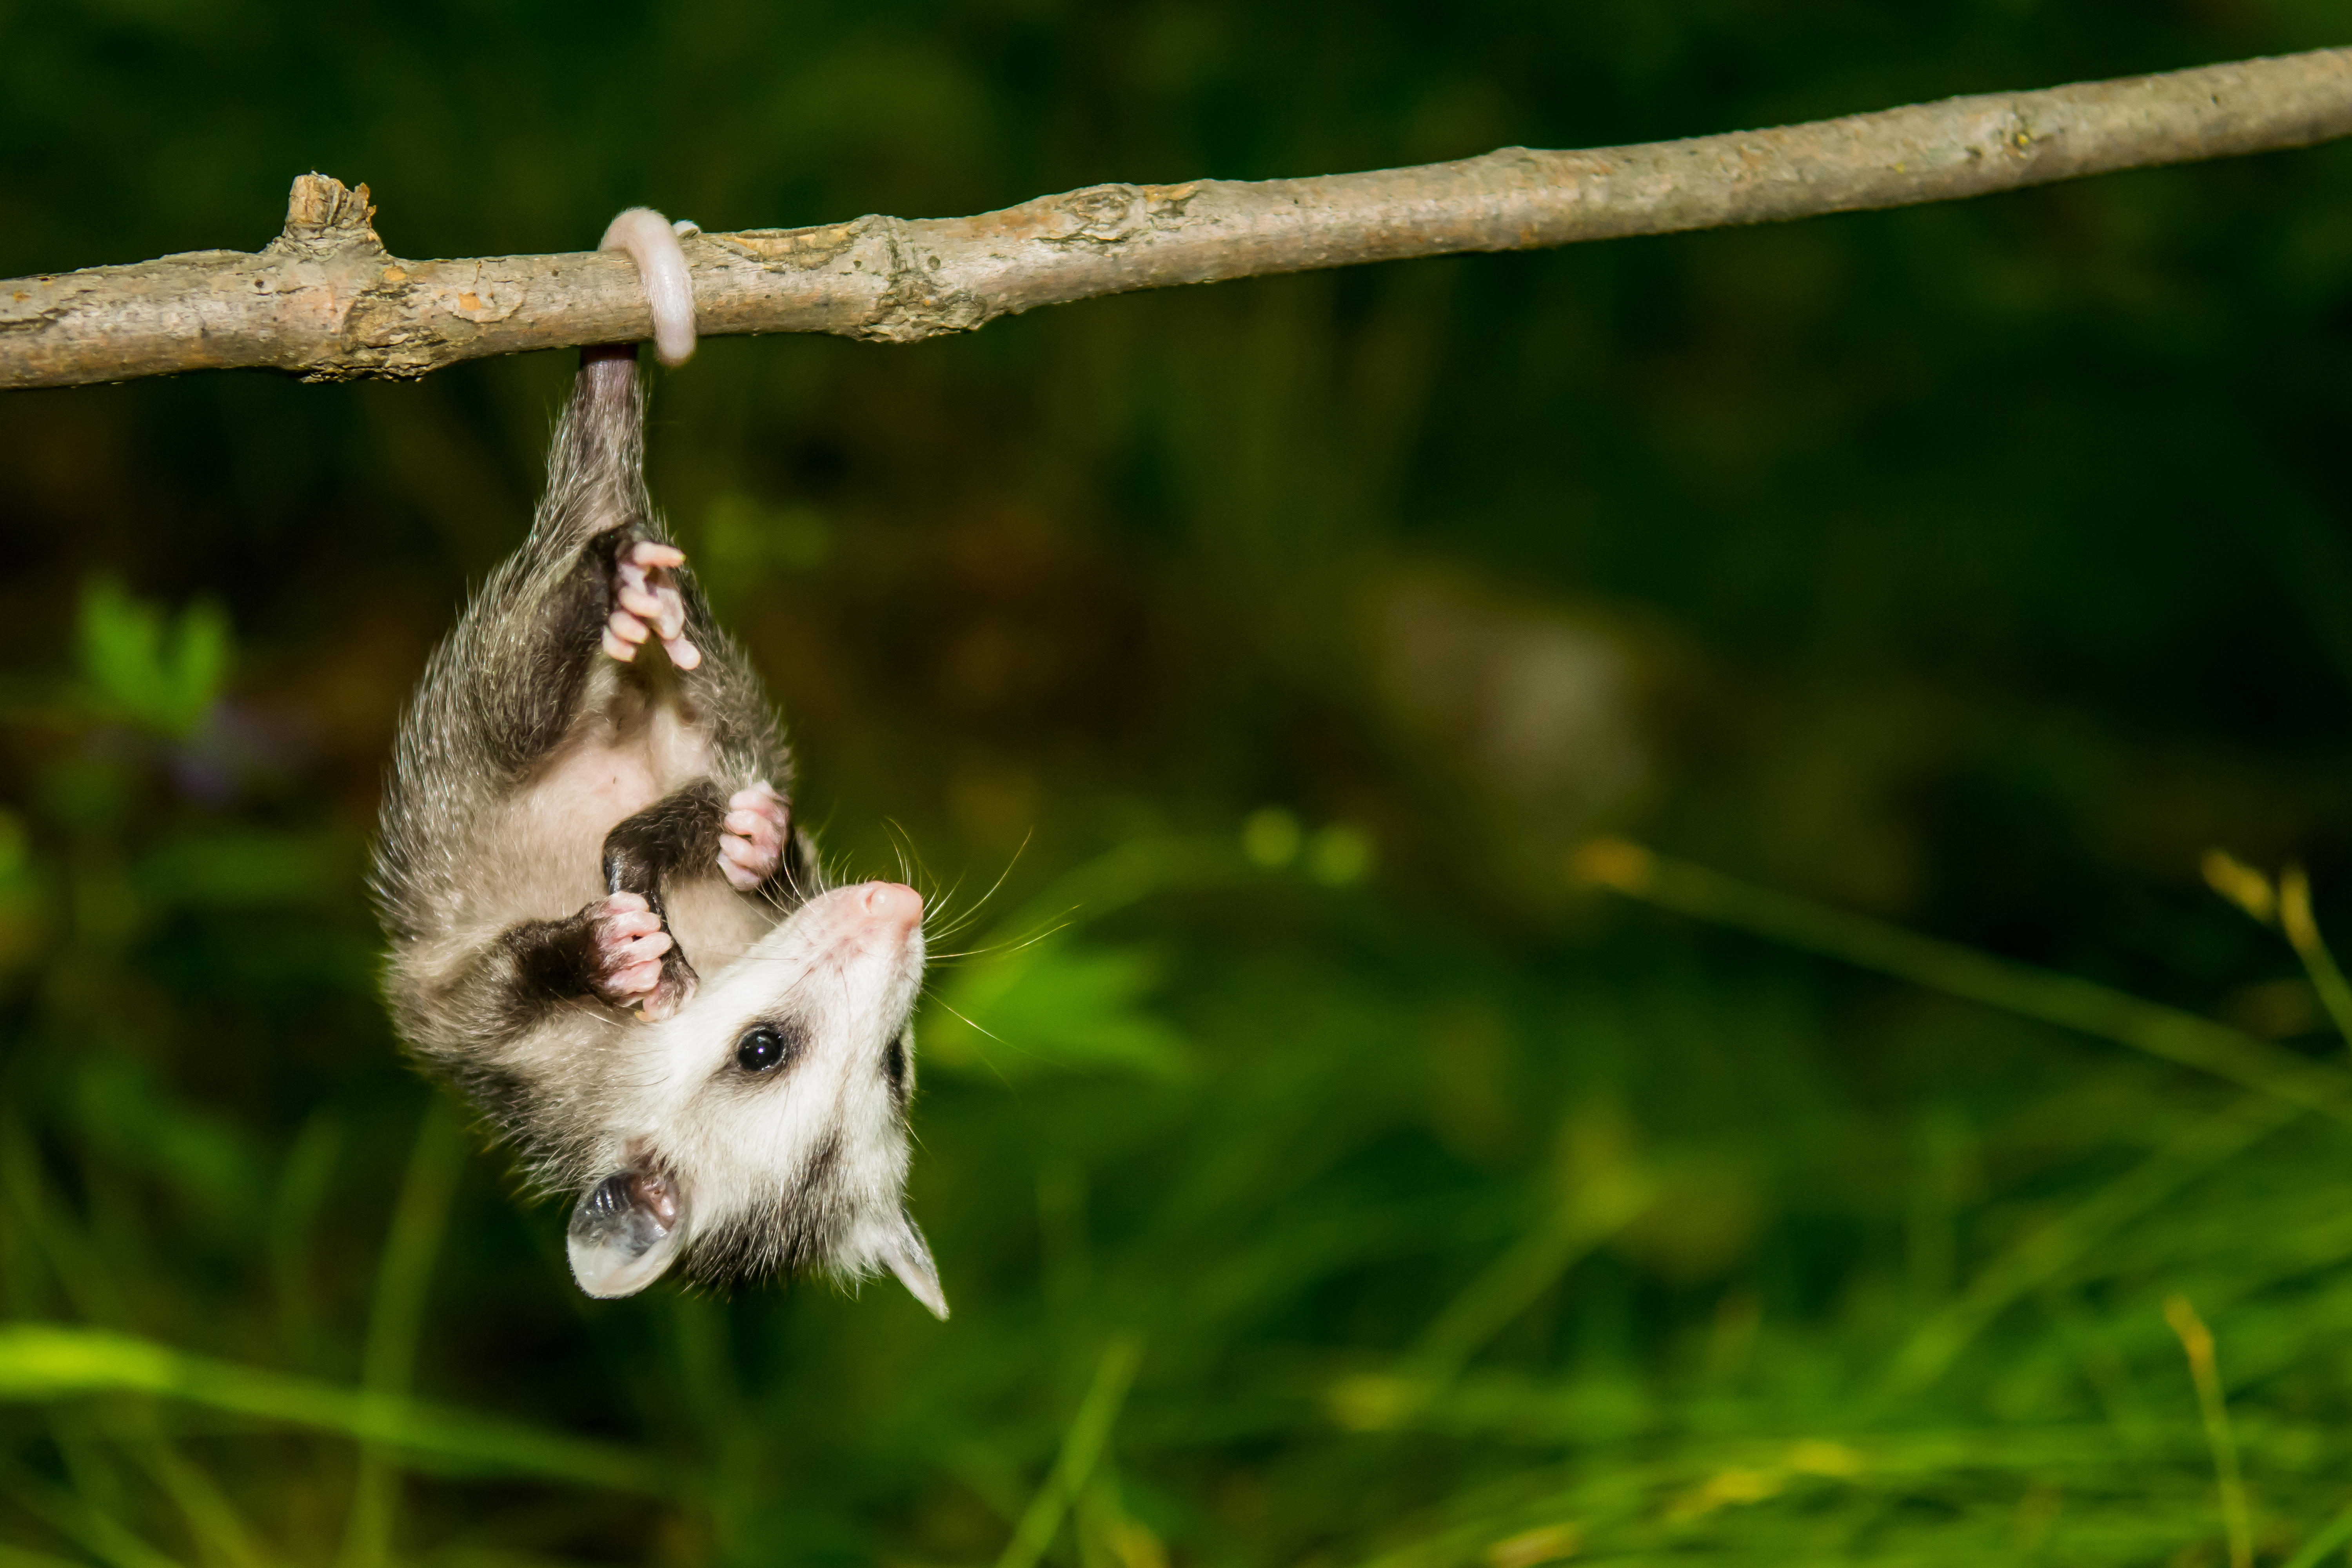 Home Remedies to Get Rid of a Possum | Home Guides | SF Gate